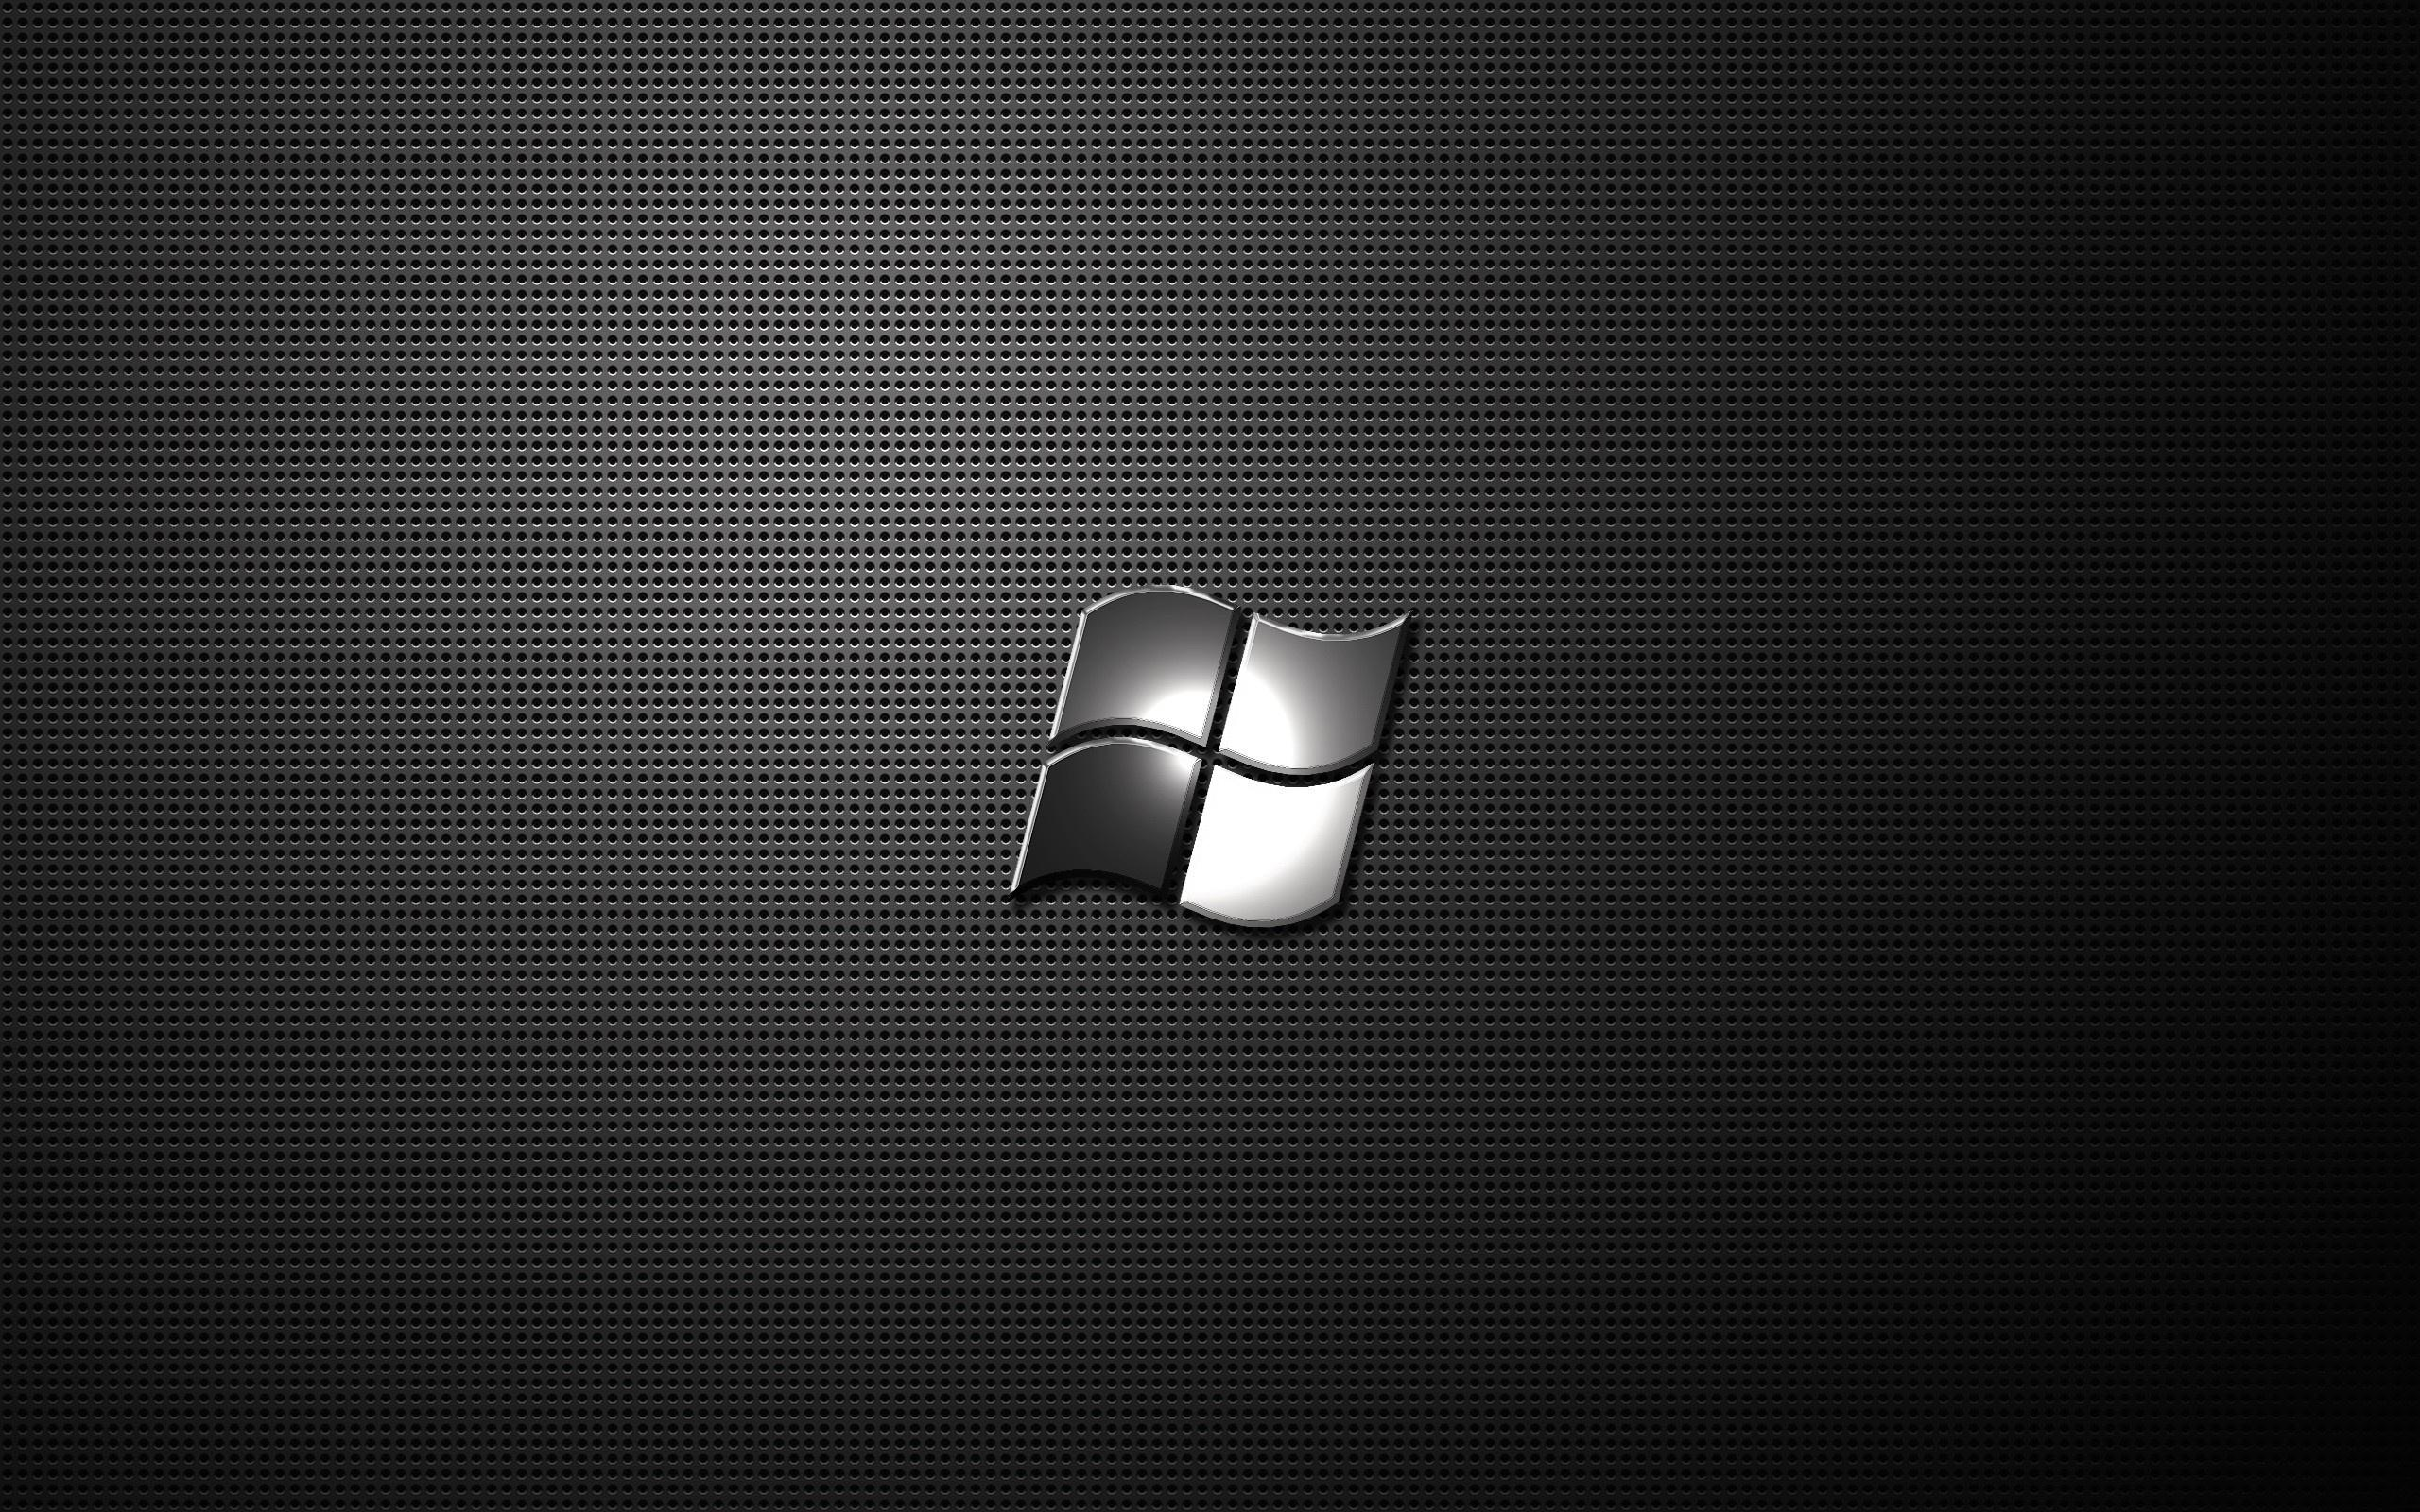 3d Animated Wallpaper For Windows 7 Ultimate Free Download Hd Windows Computer Microsoft Fg Download Wallpaper